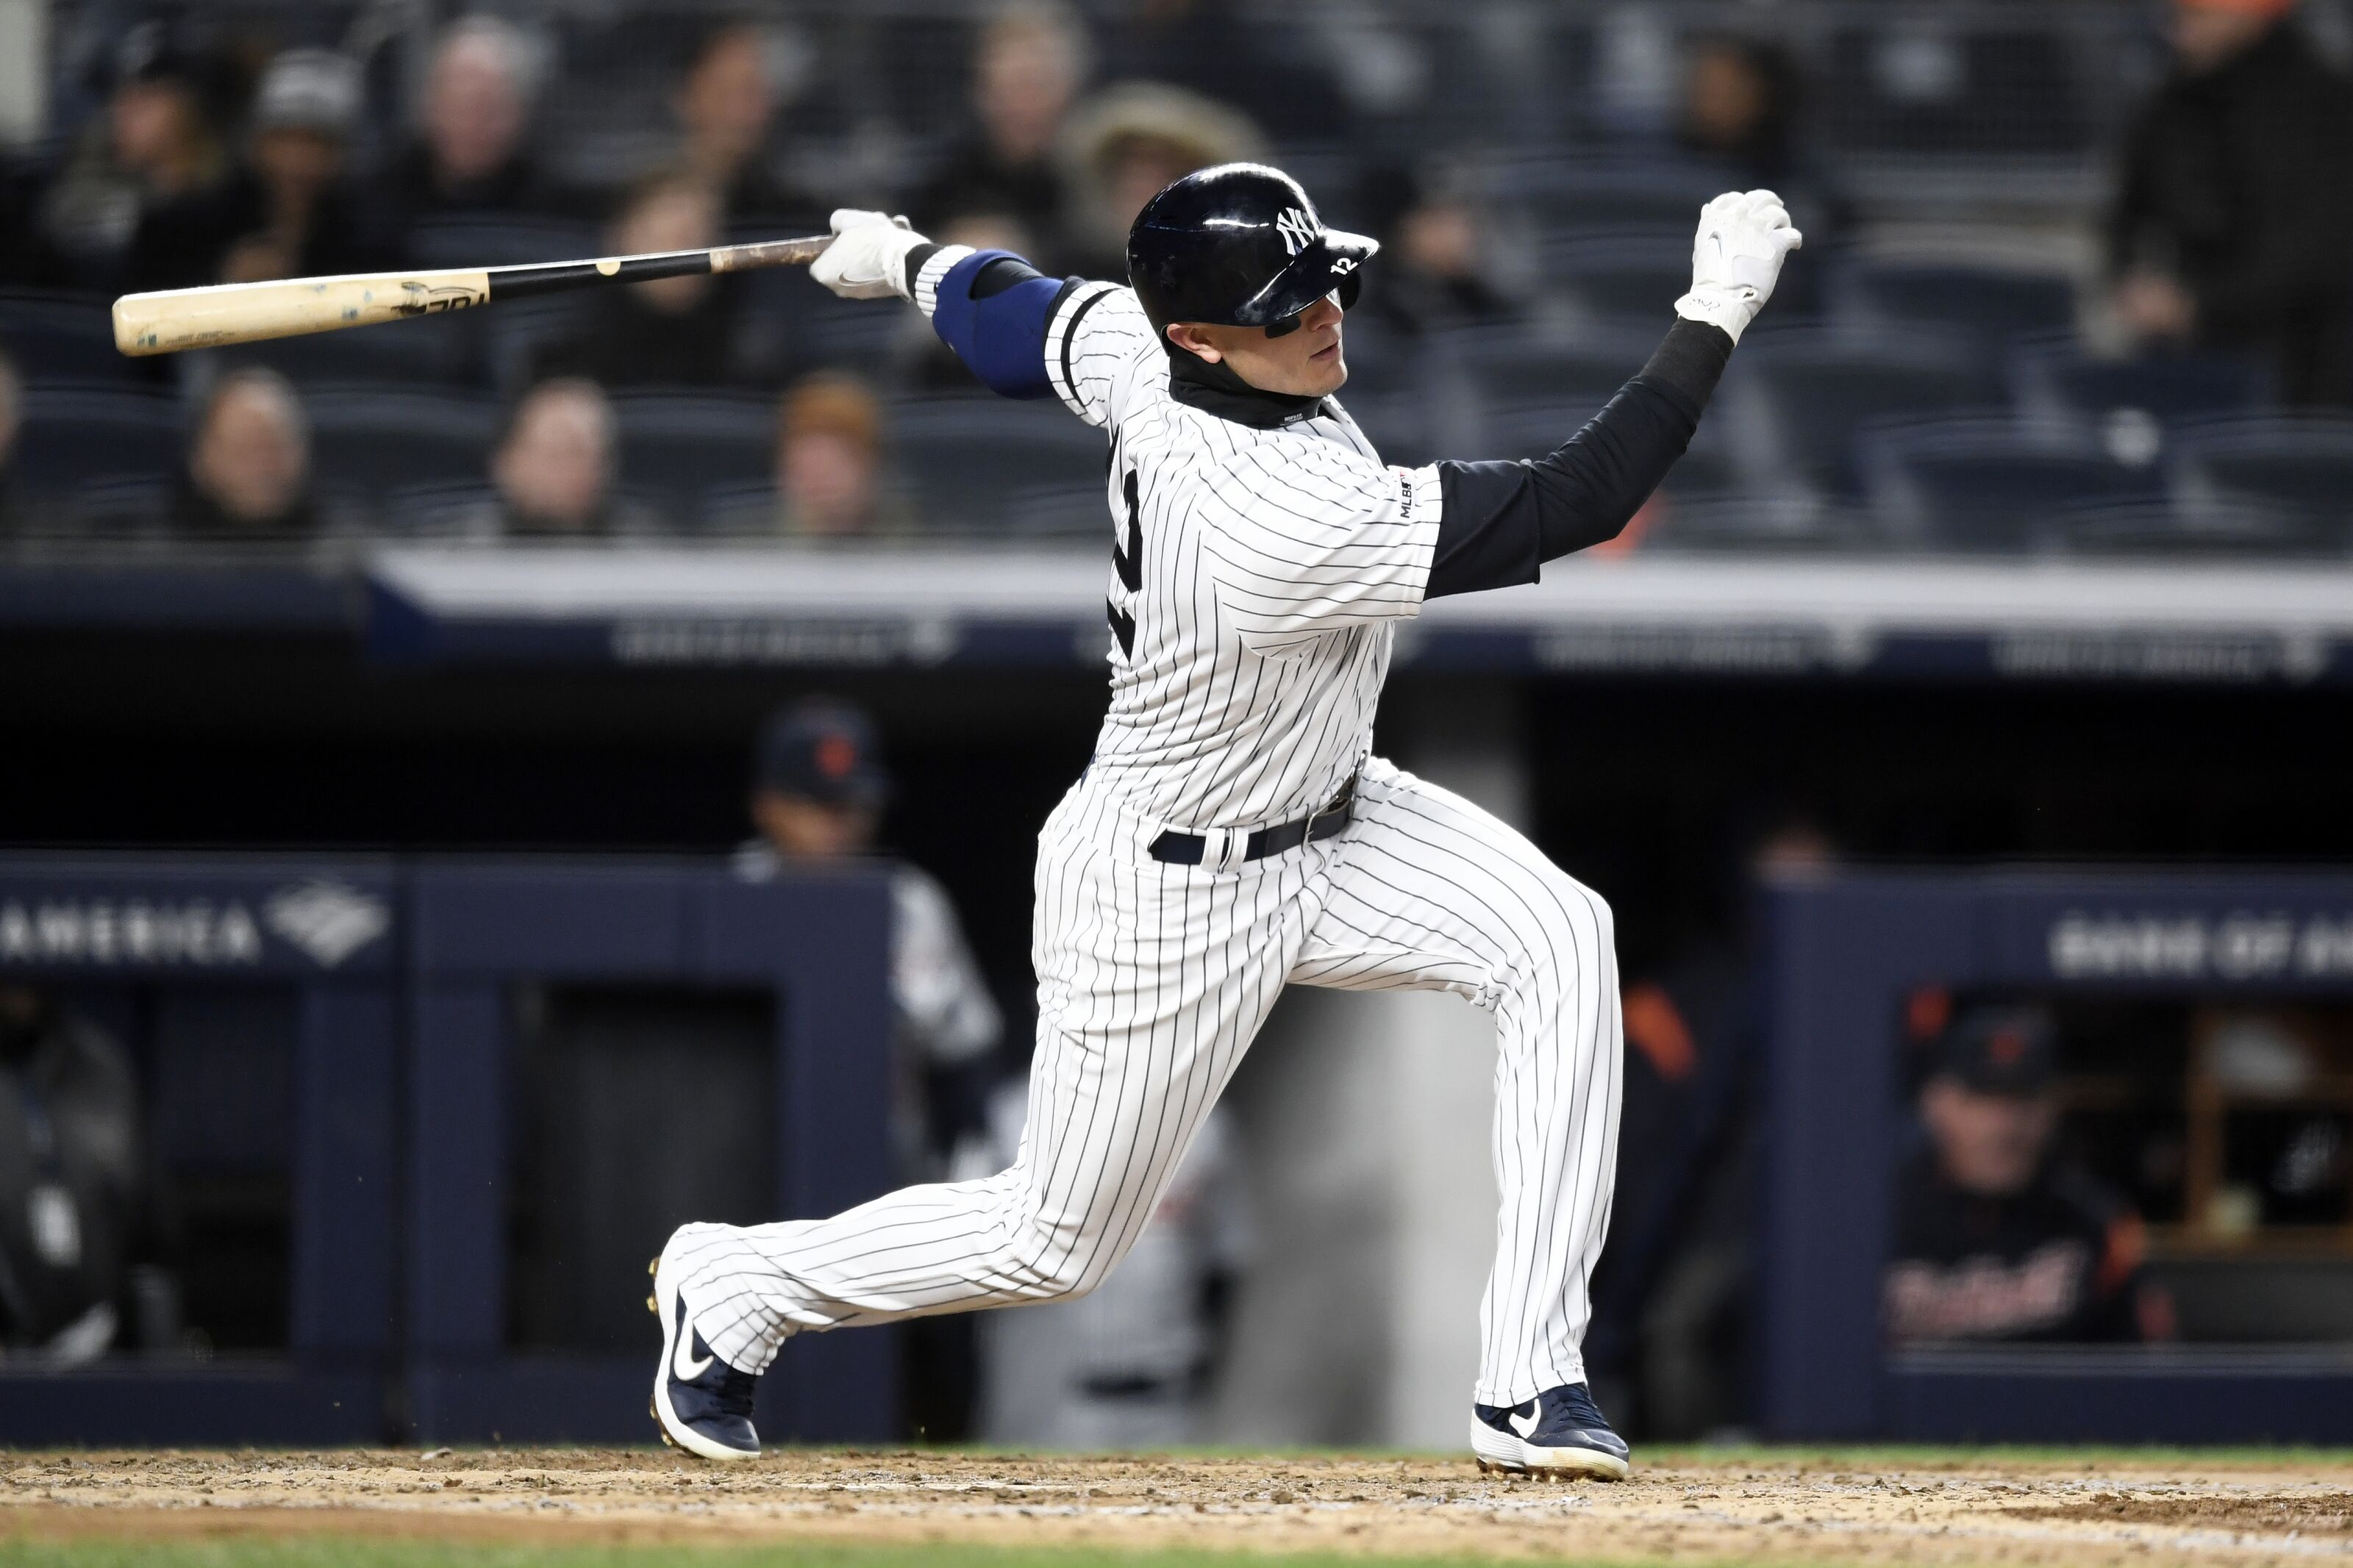 acd43d8a6 Yankees show extreme concern by sending Troy Tulowitzki to hospital